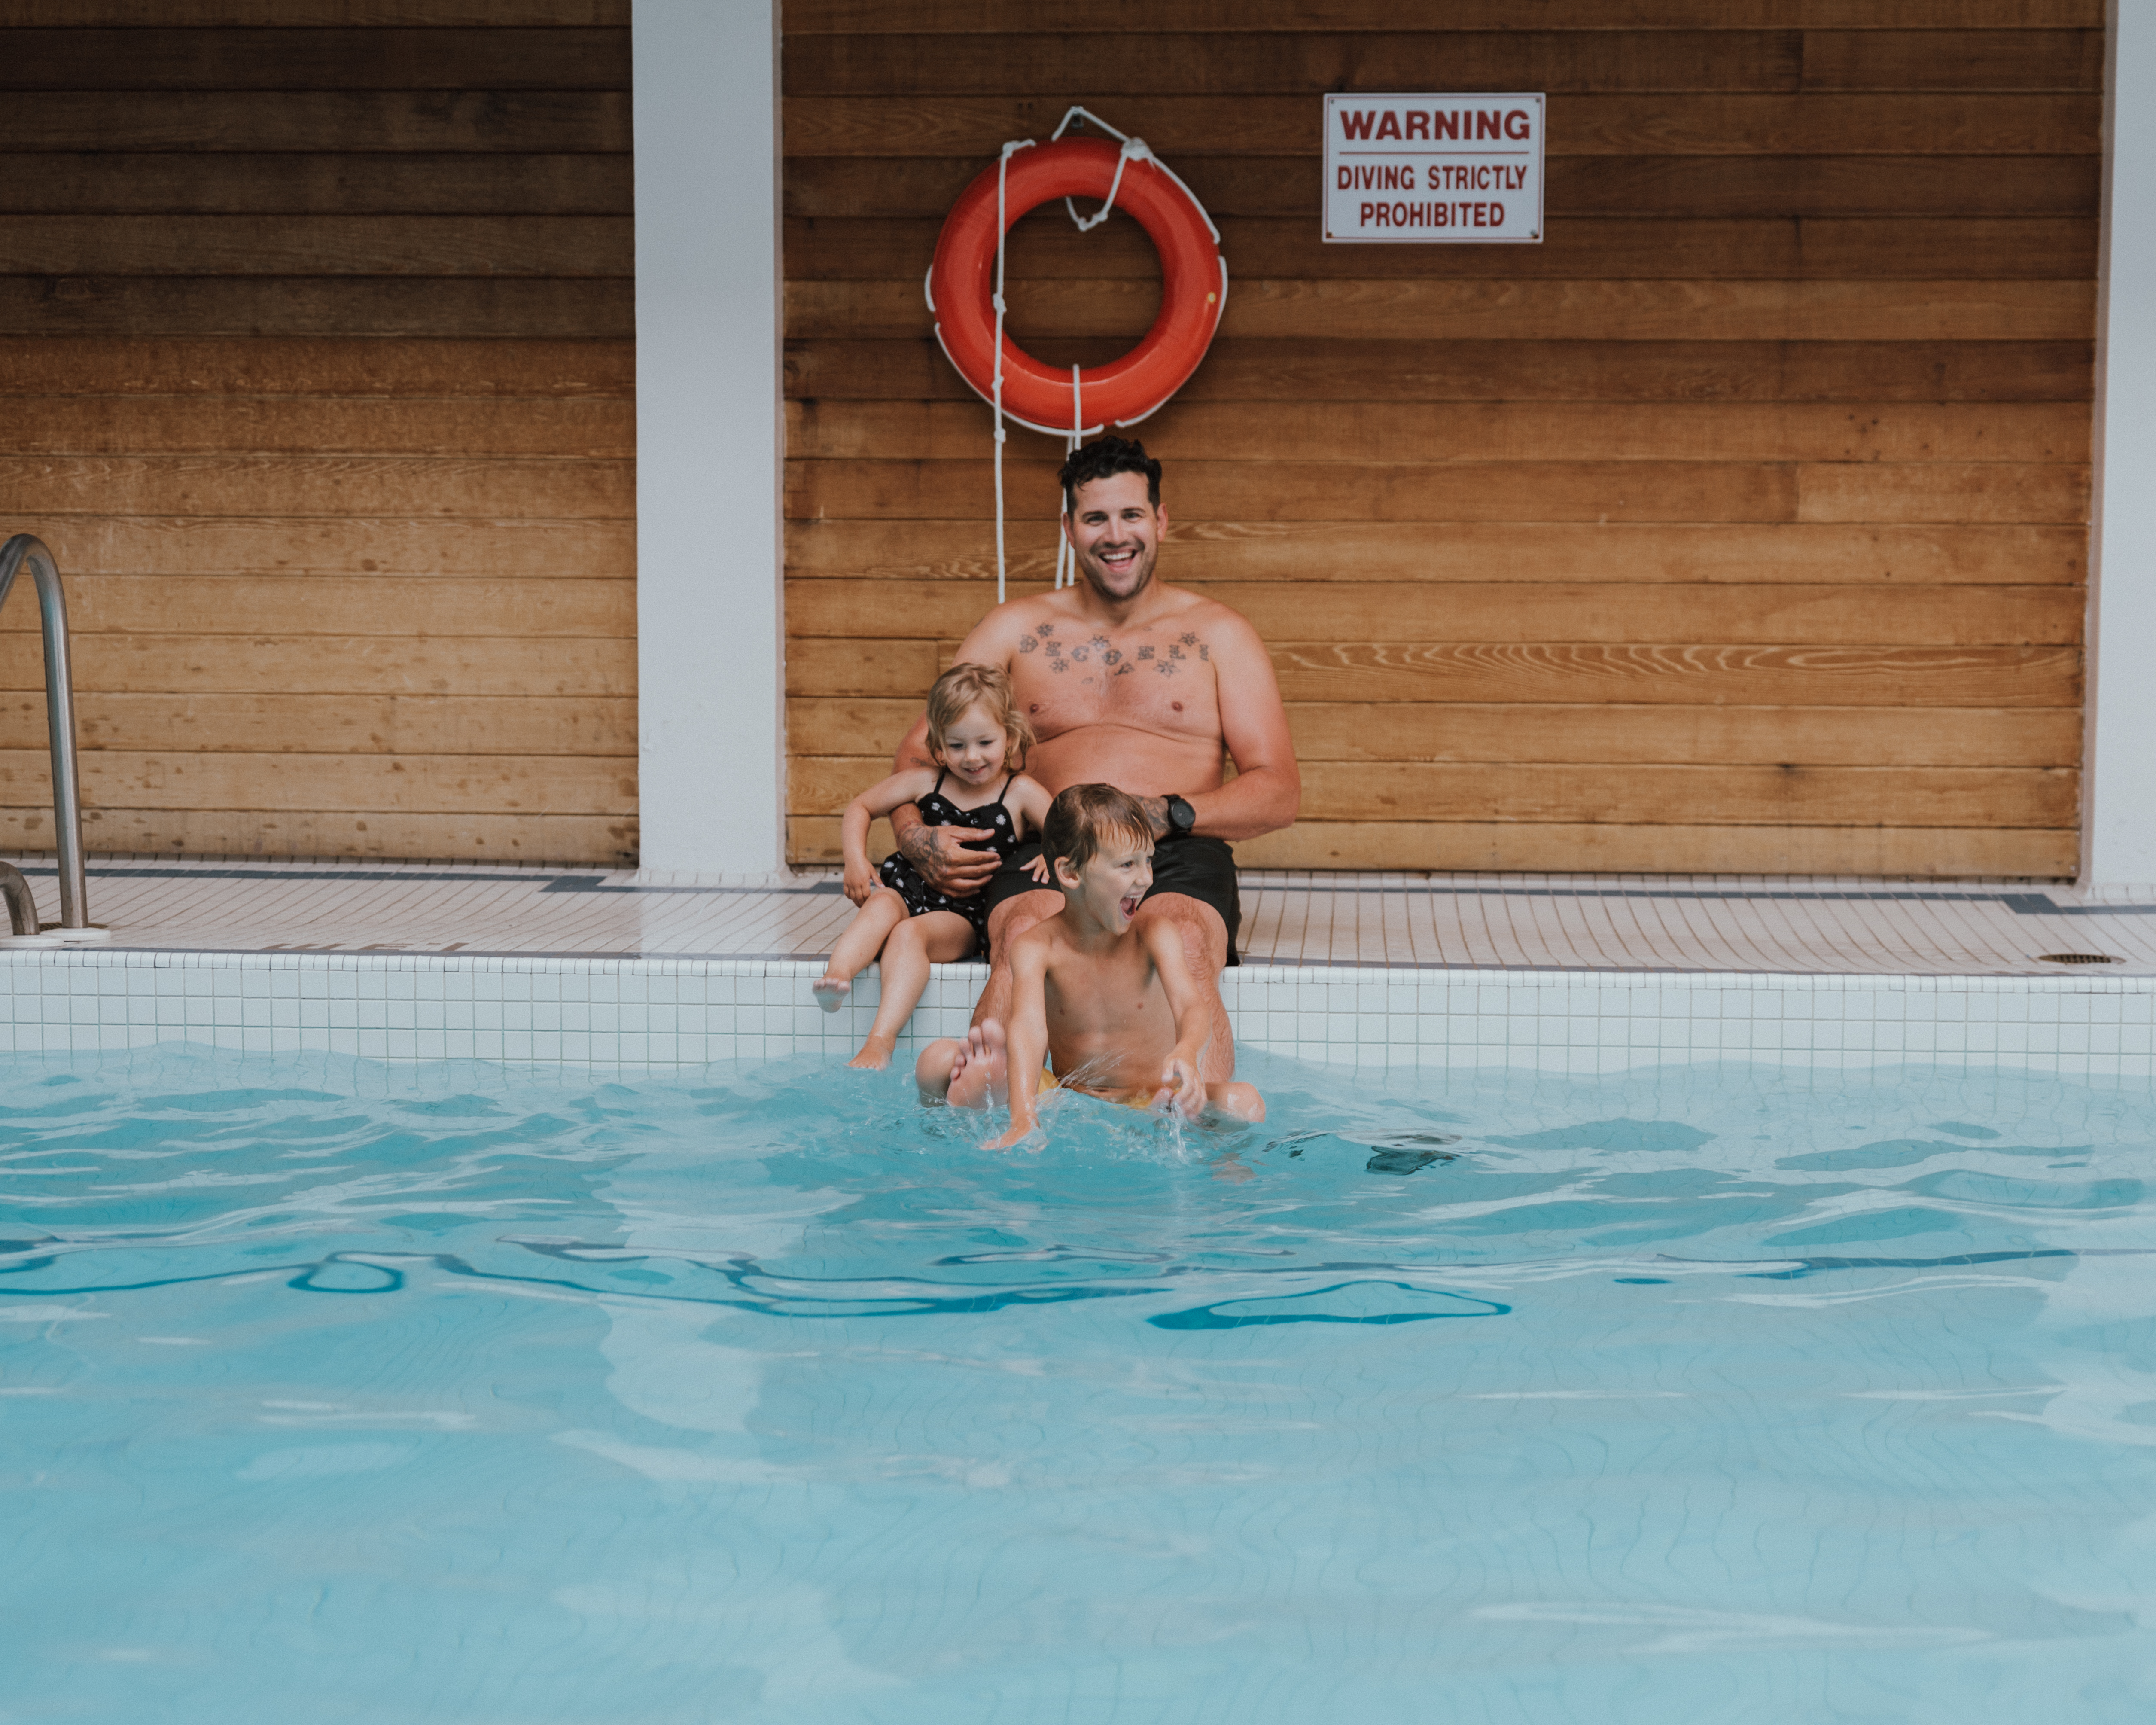 Our Family Vacation to the Rodd Brudenell River Resort | The Wild Decoelis